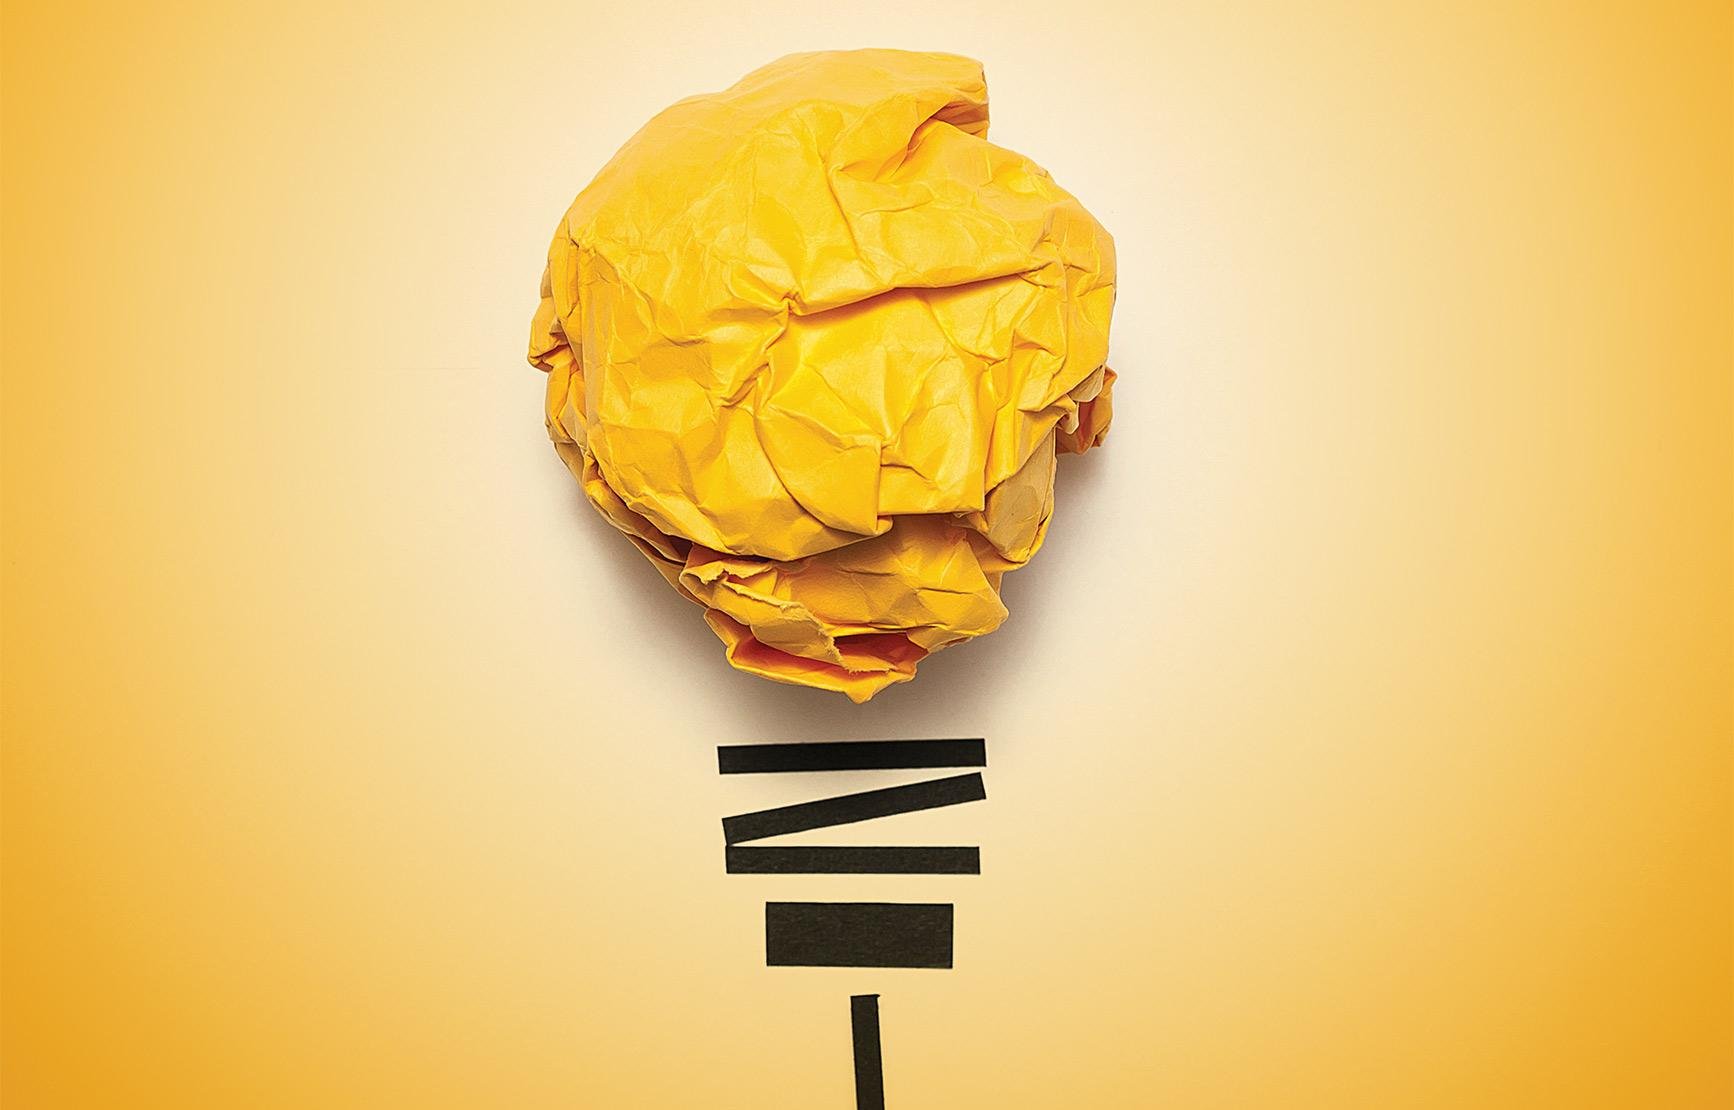 yellow crumpled paper and tape modeled as light bulb in front of yellow backdrop